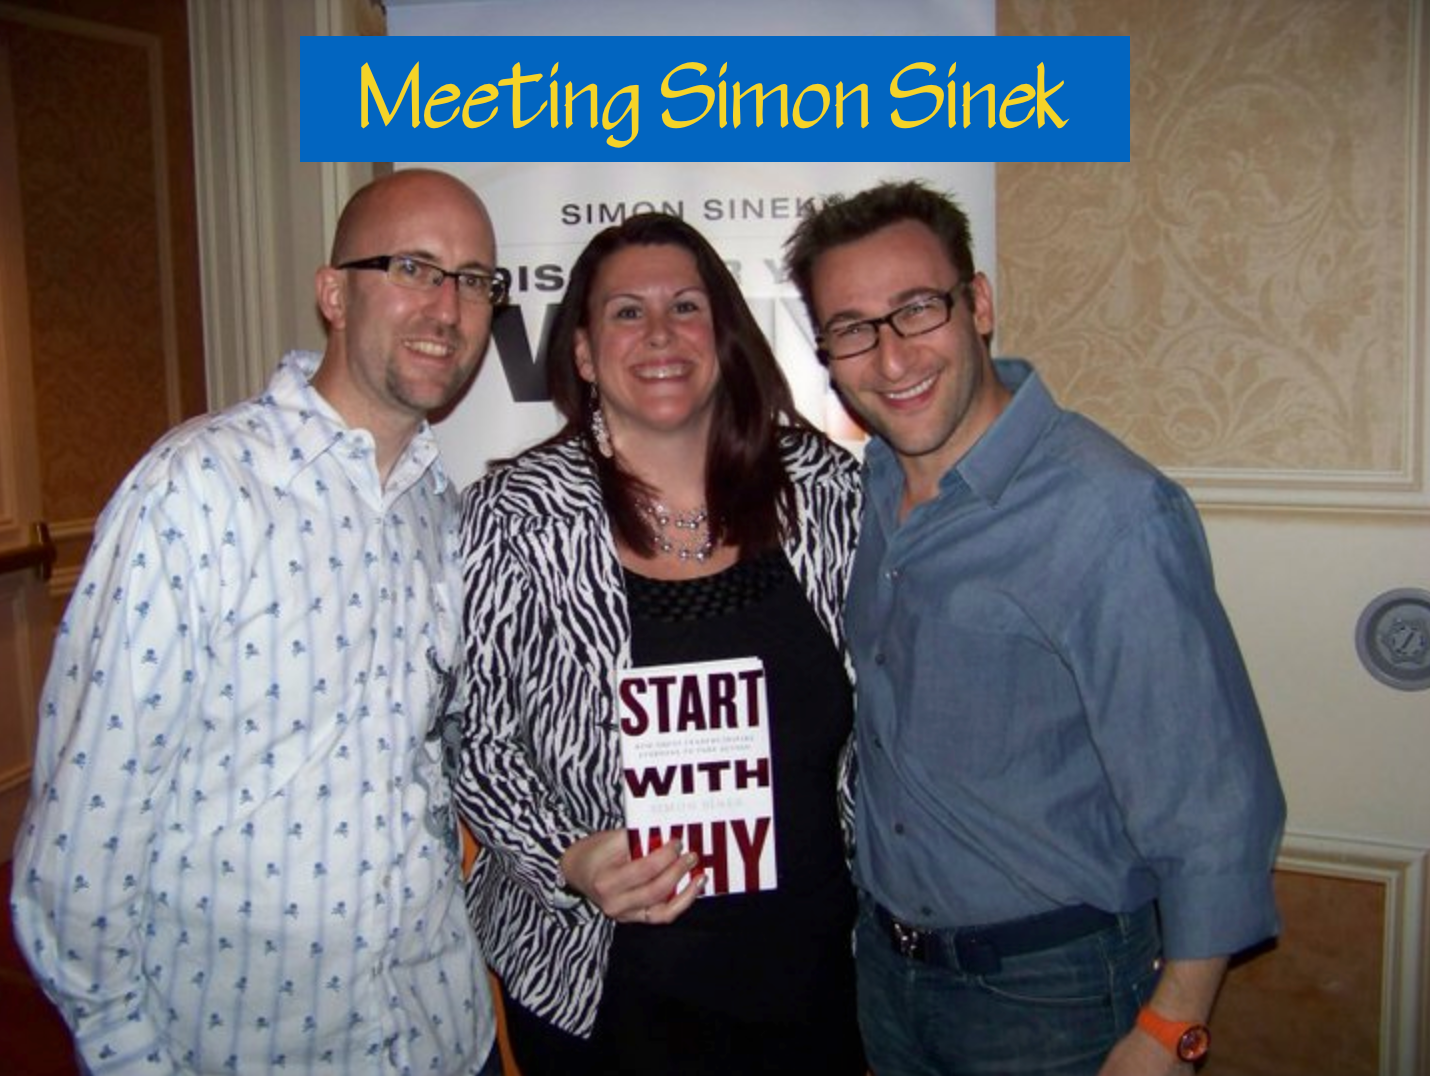 Meeting simon sinek start with why